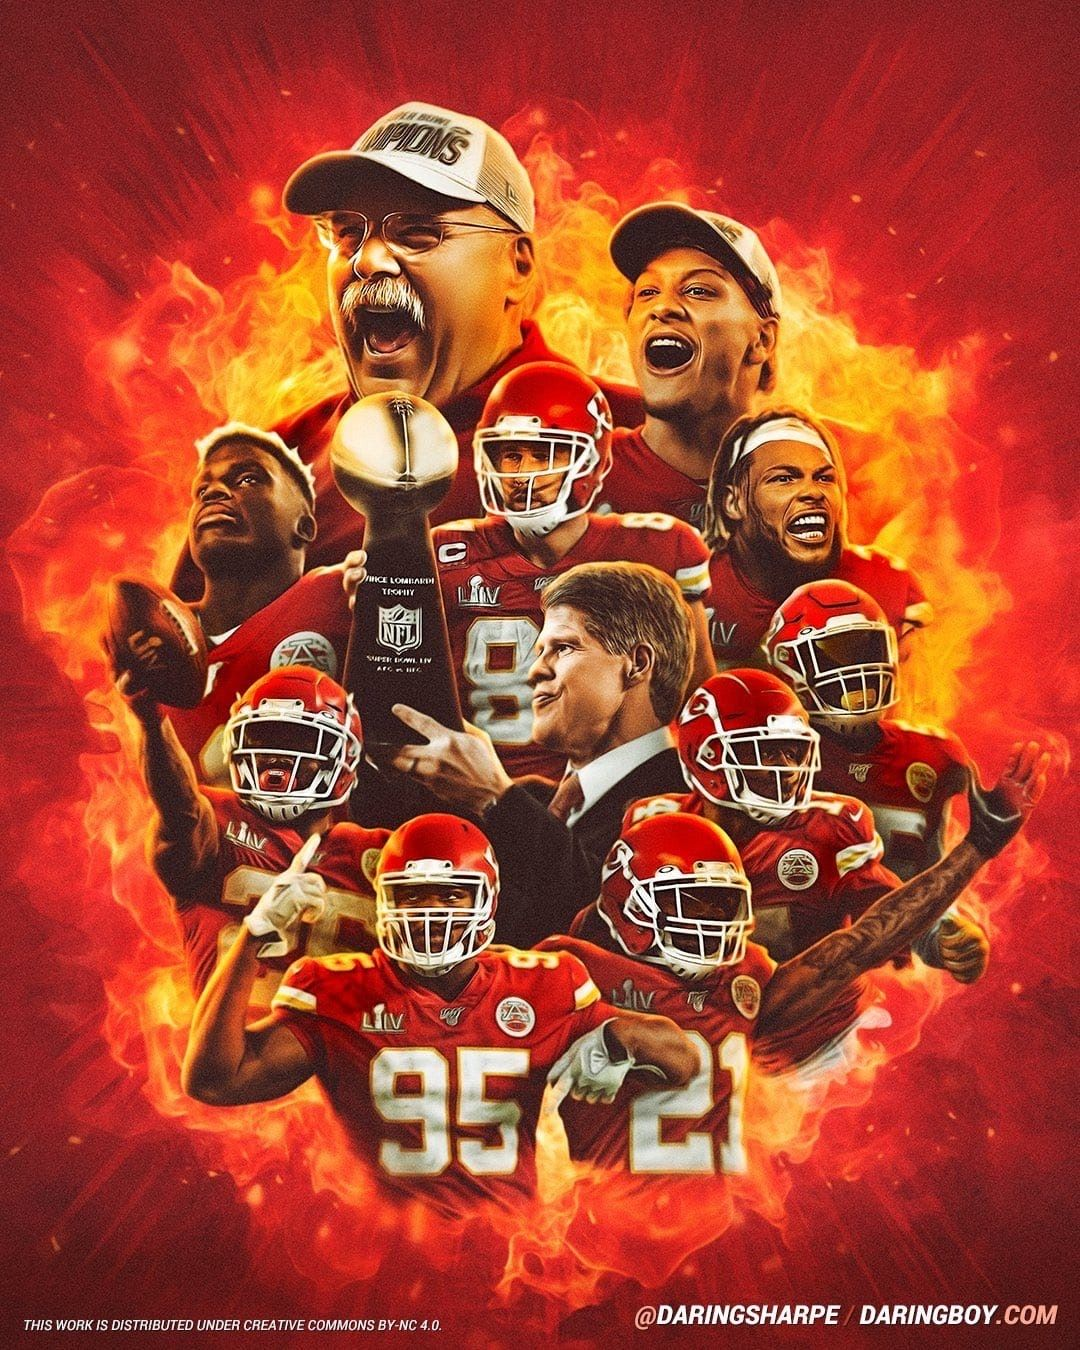 Pin By Todd D On Kansas City Chiefs In 2020 Chiefs Super Bowl Kansas City Chiefs Football Kansas City Chiefs